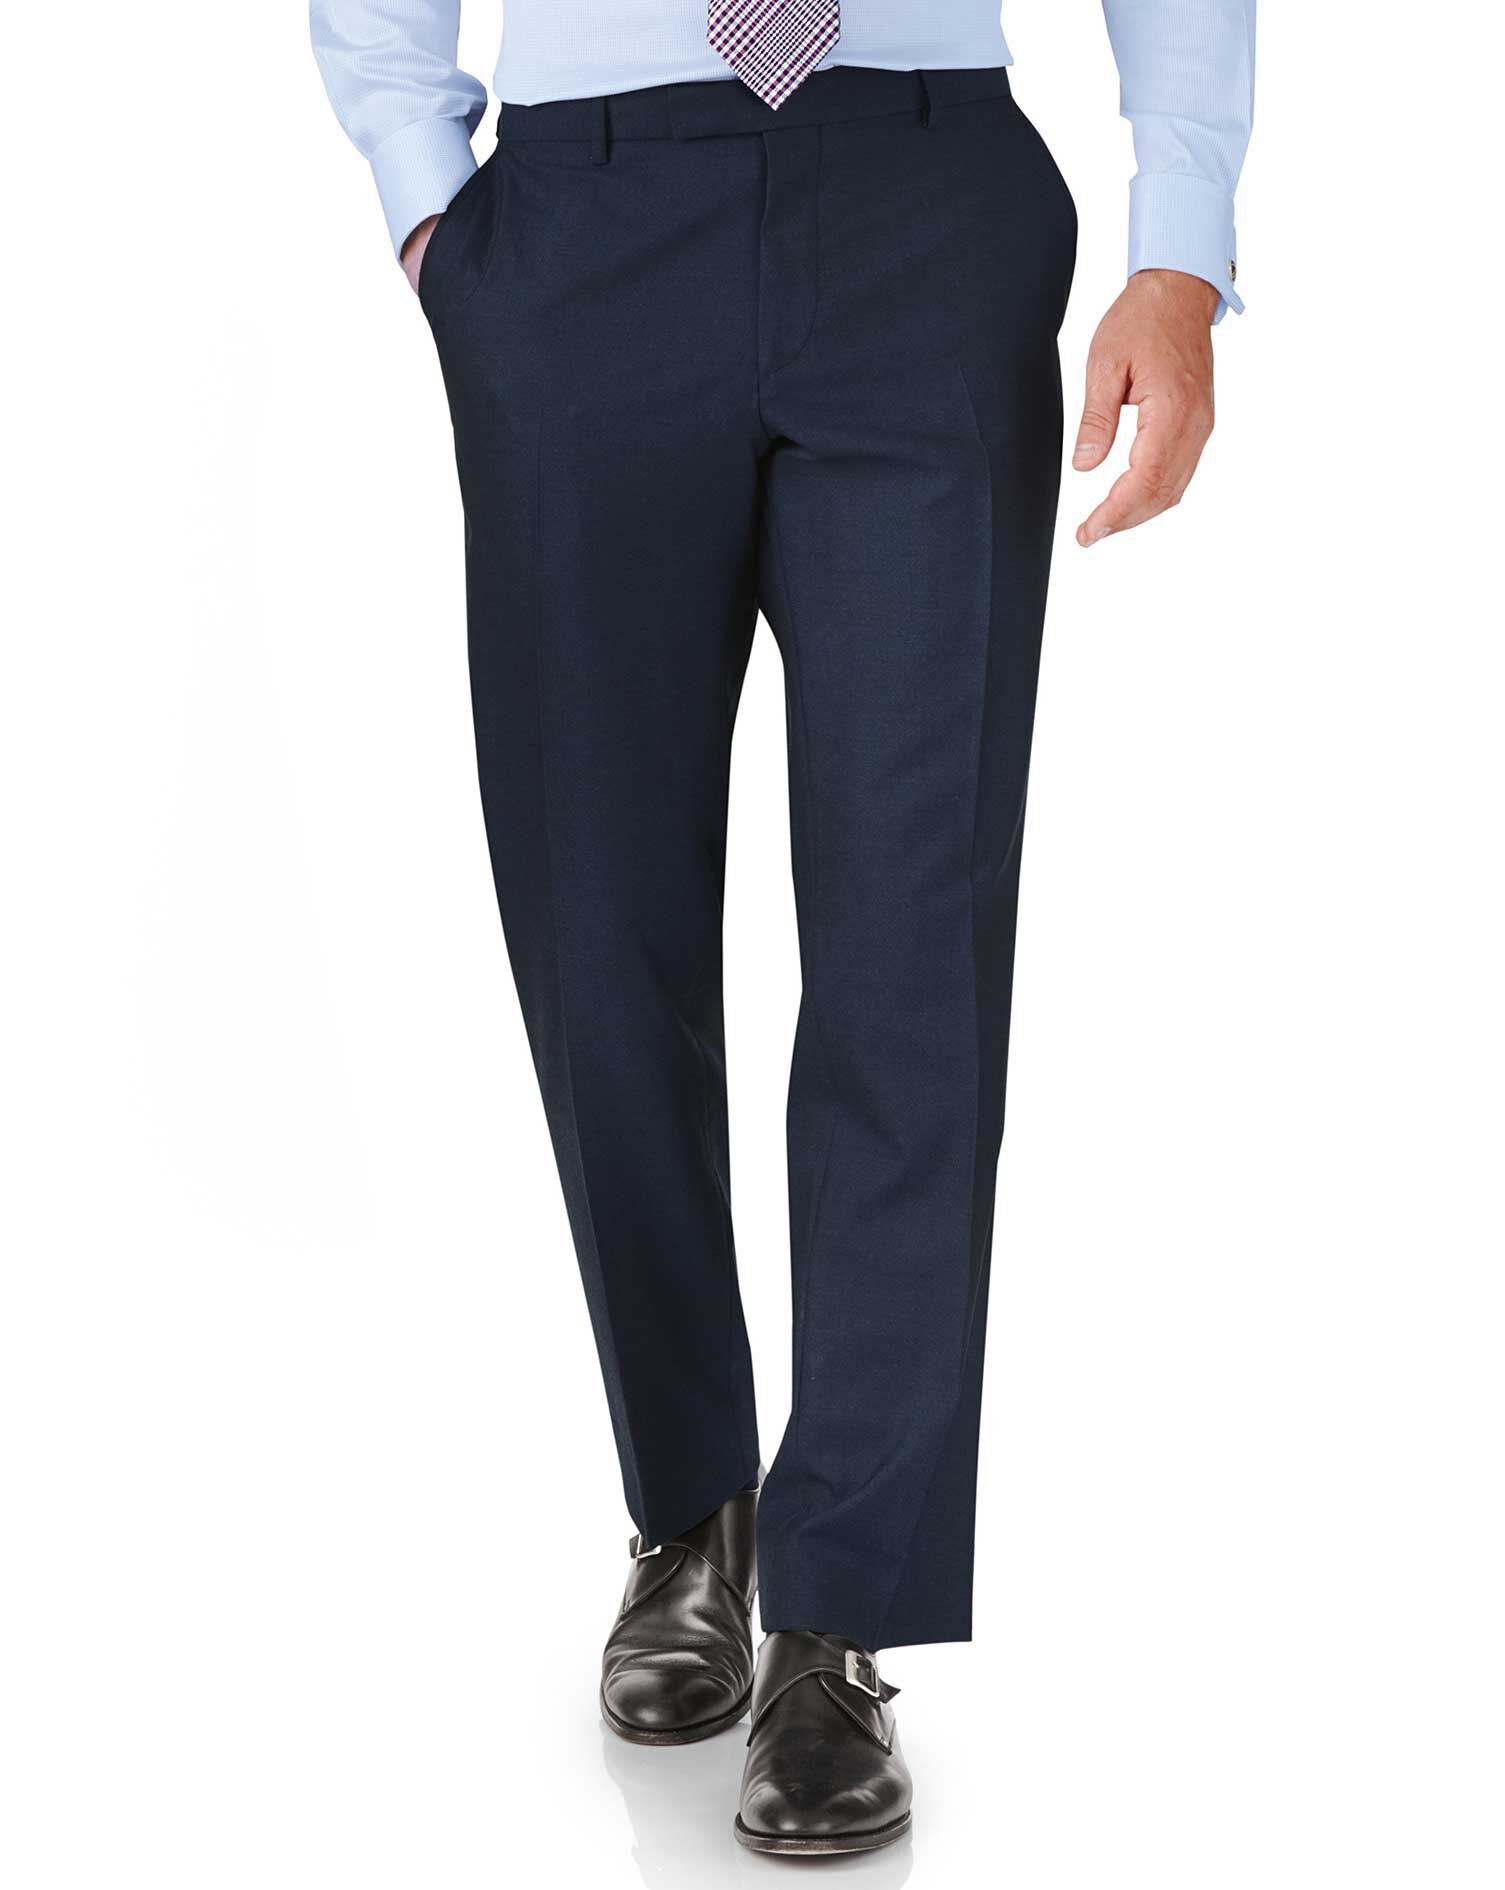 Blue Classic Fit British Panama Luxury Suit Trouser Size W34 L32 by Charles Tyrwhitt